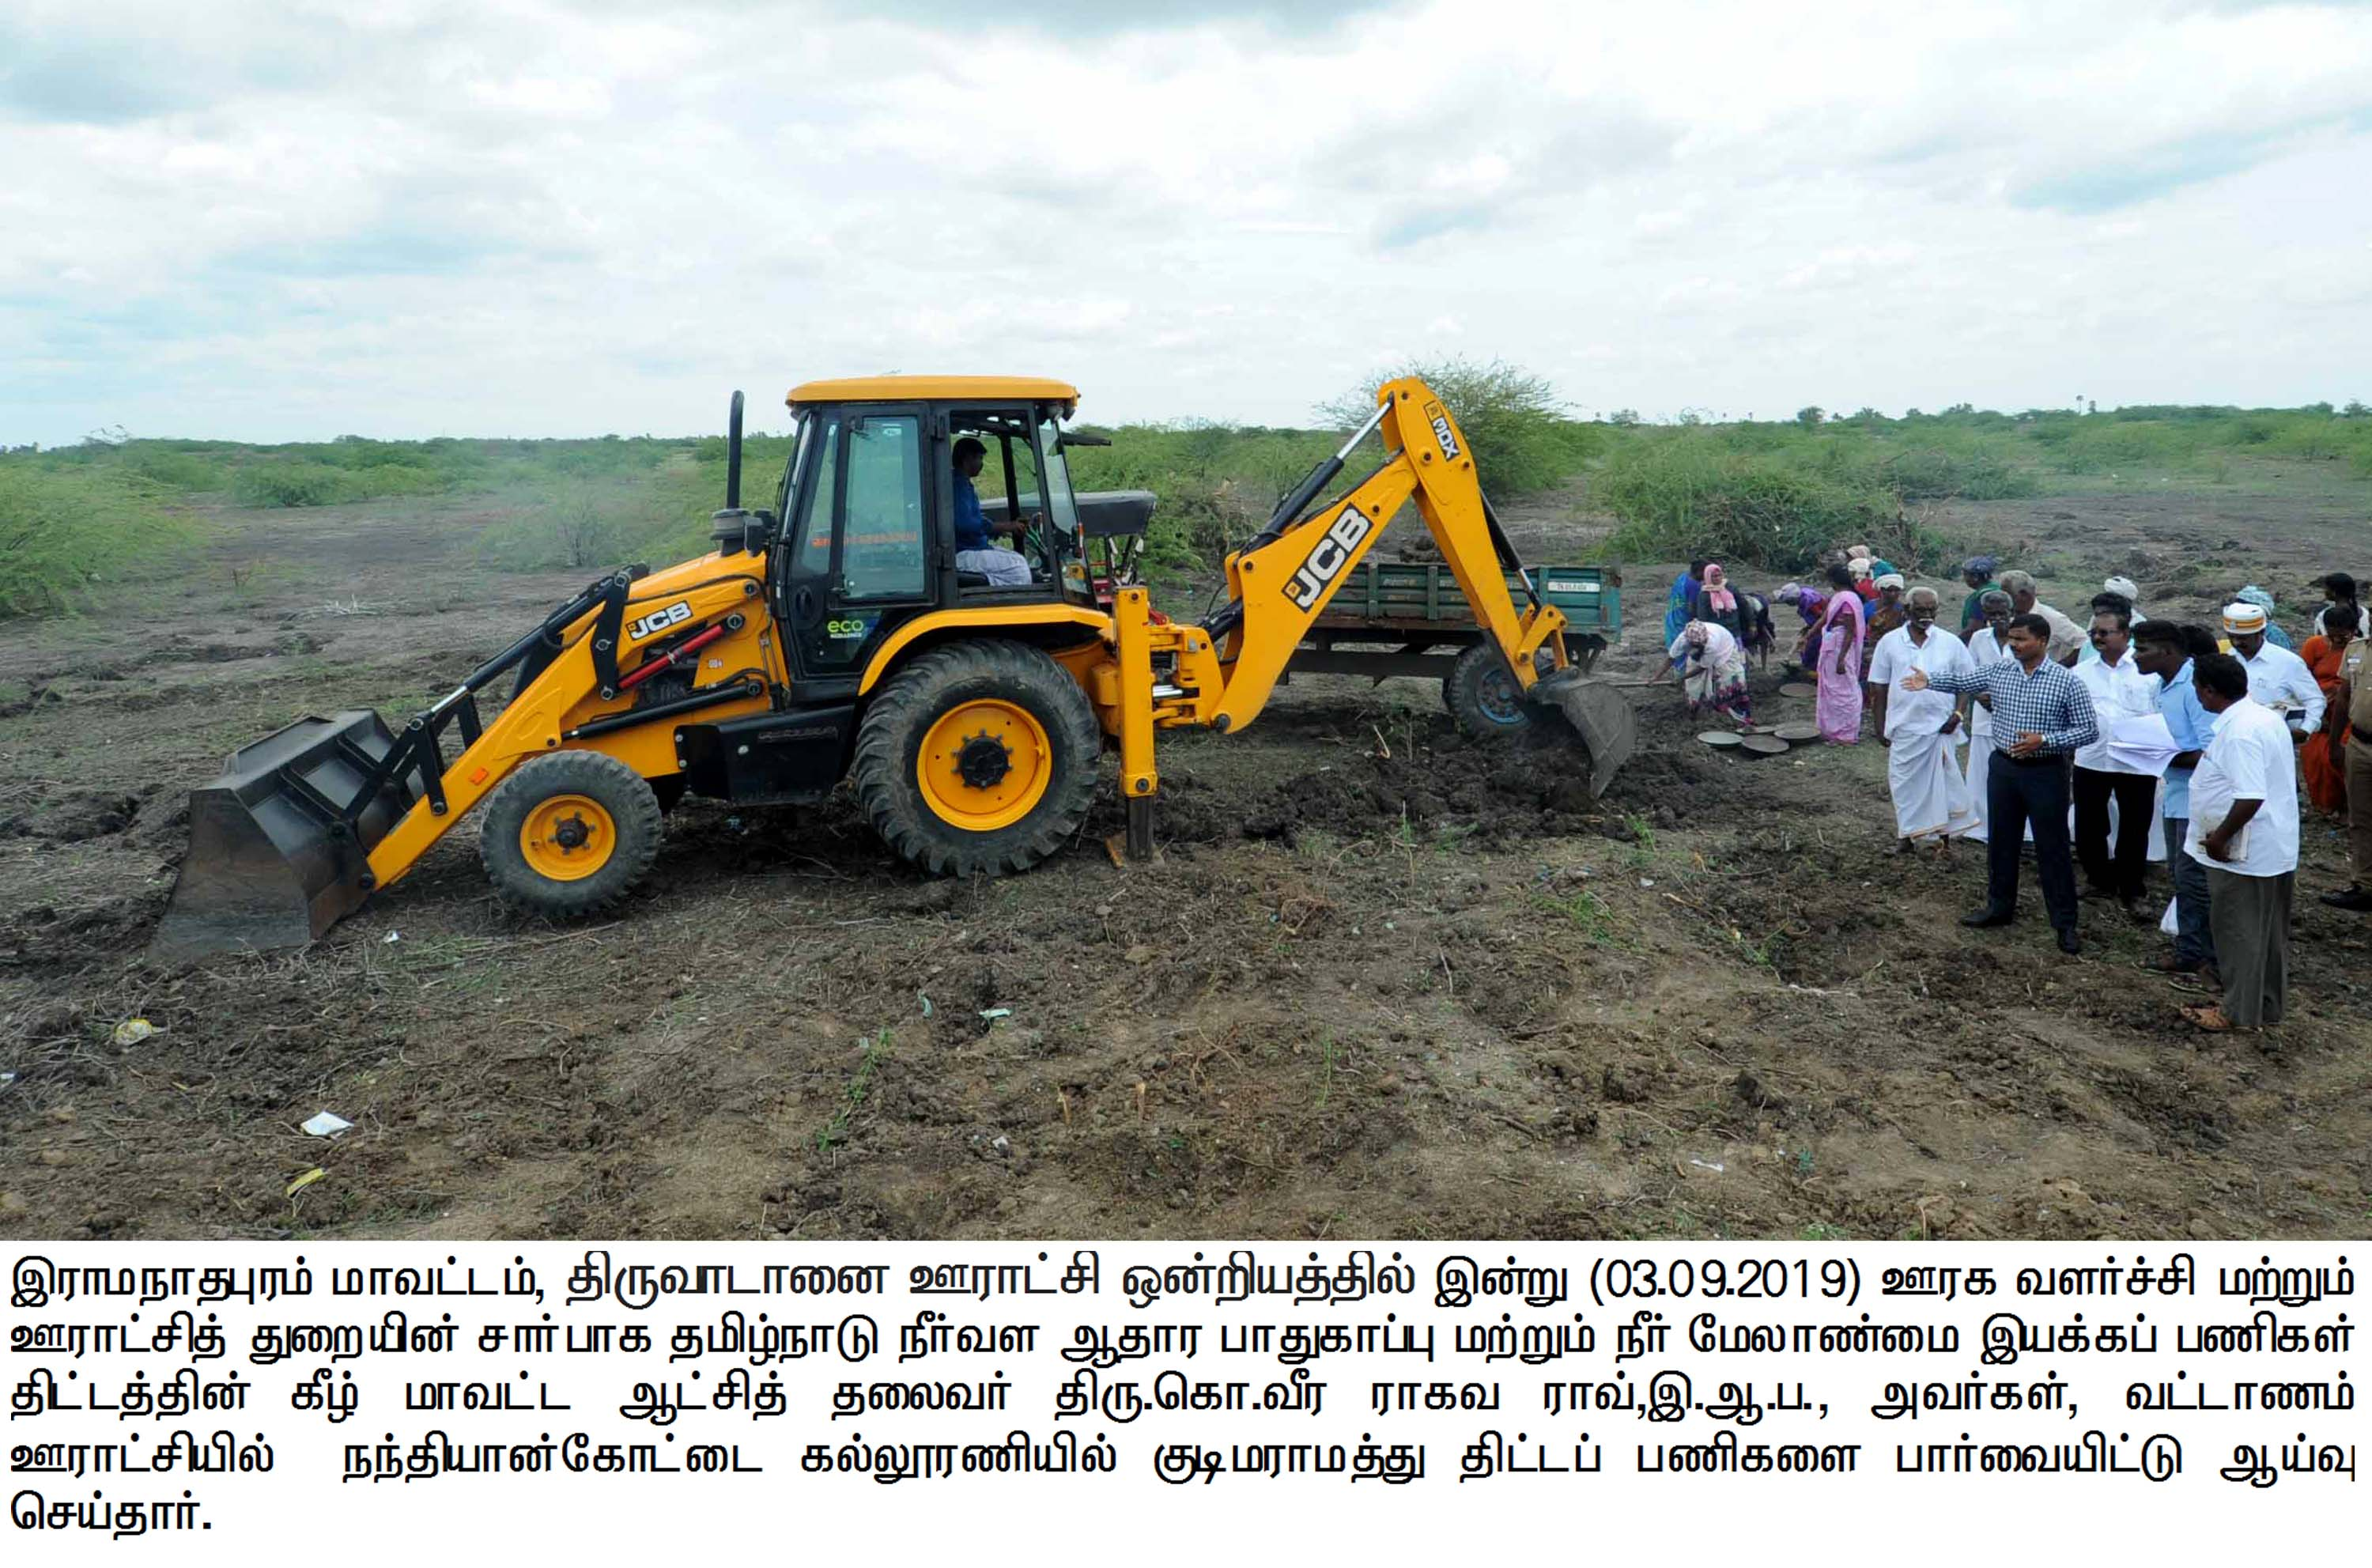 PR NO:03_COLLECTOR_KUDIMARAMATHU WORKS_THIRUVADANAI_03/09/2019